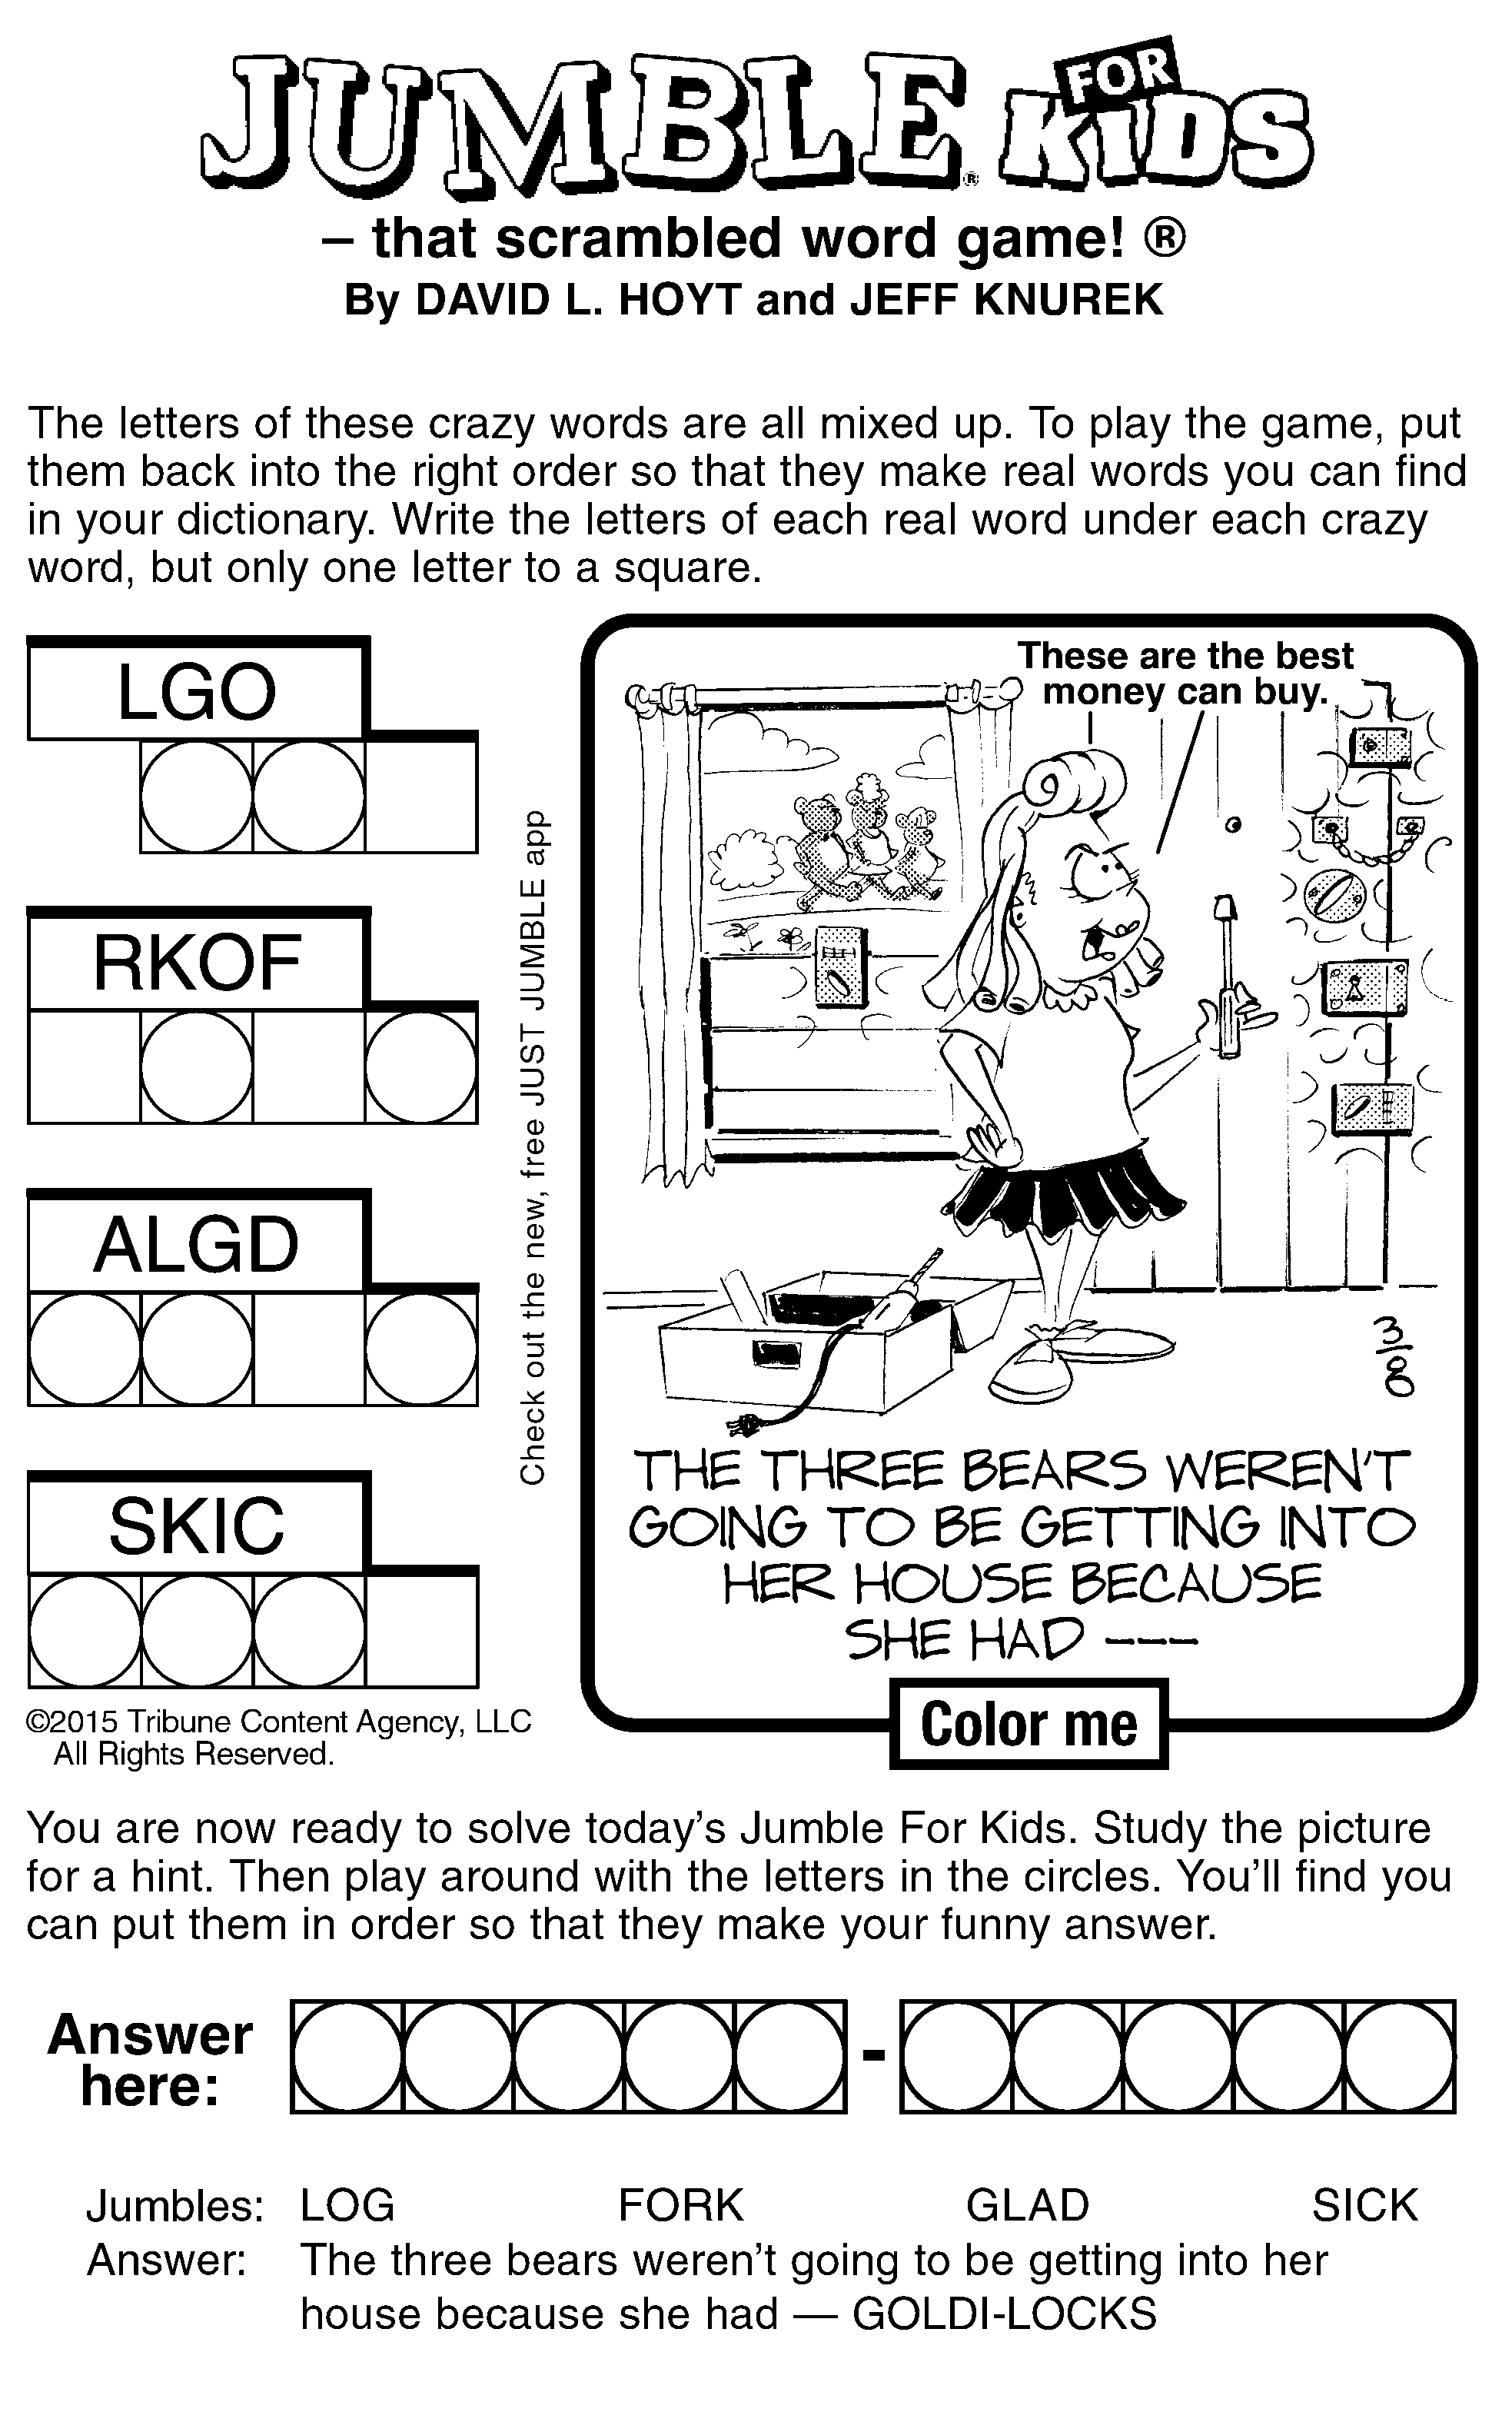 Sample Of Jumble For Kids